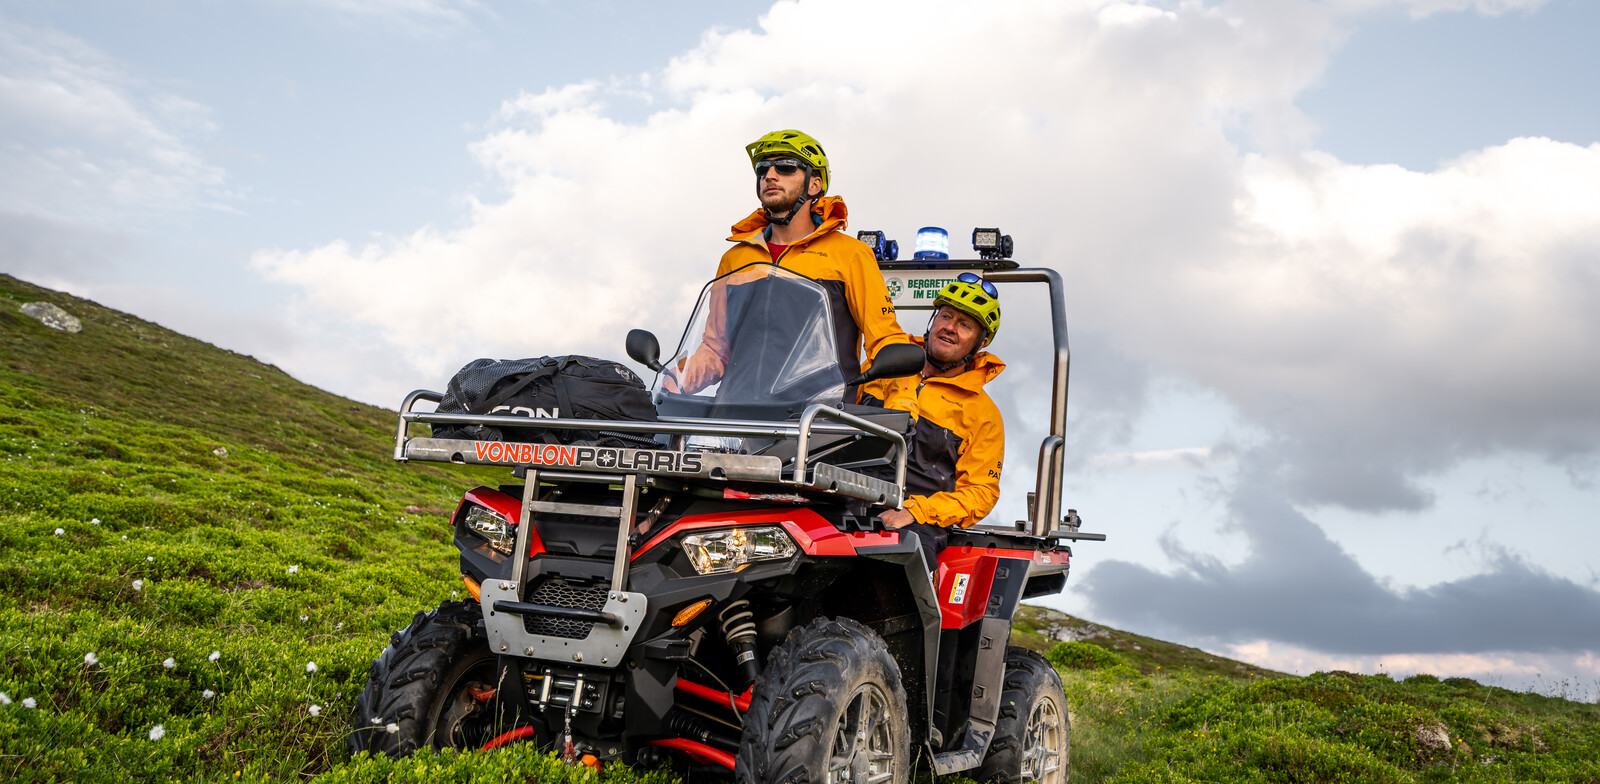 Quads are also available for the Bike Patrol. | © © saalbach.com, Wout van de Donk